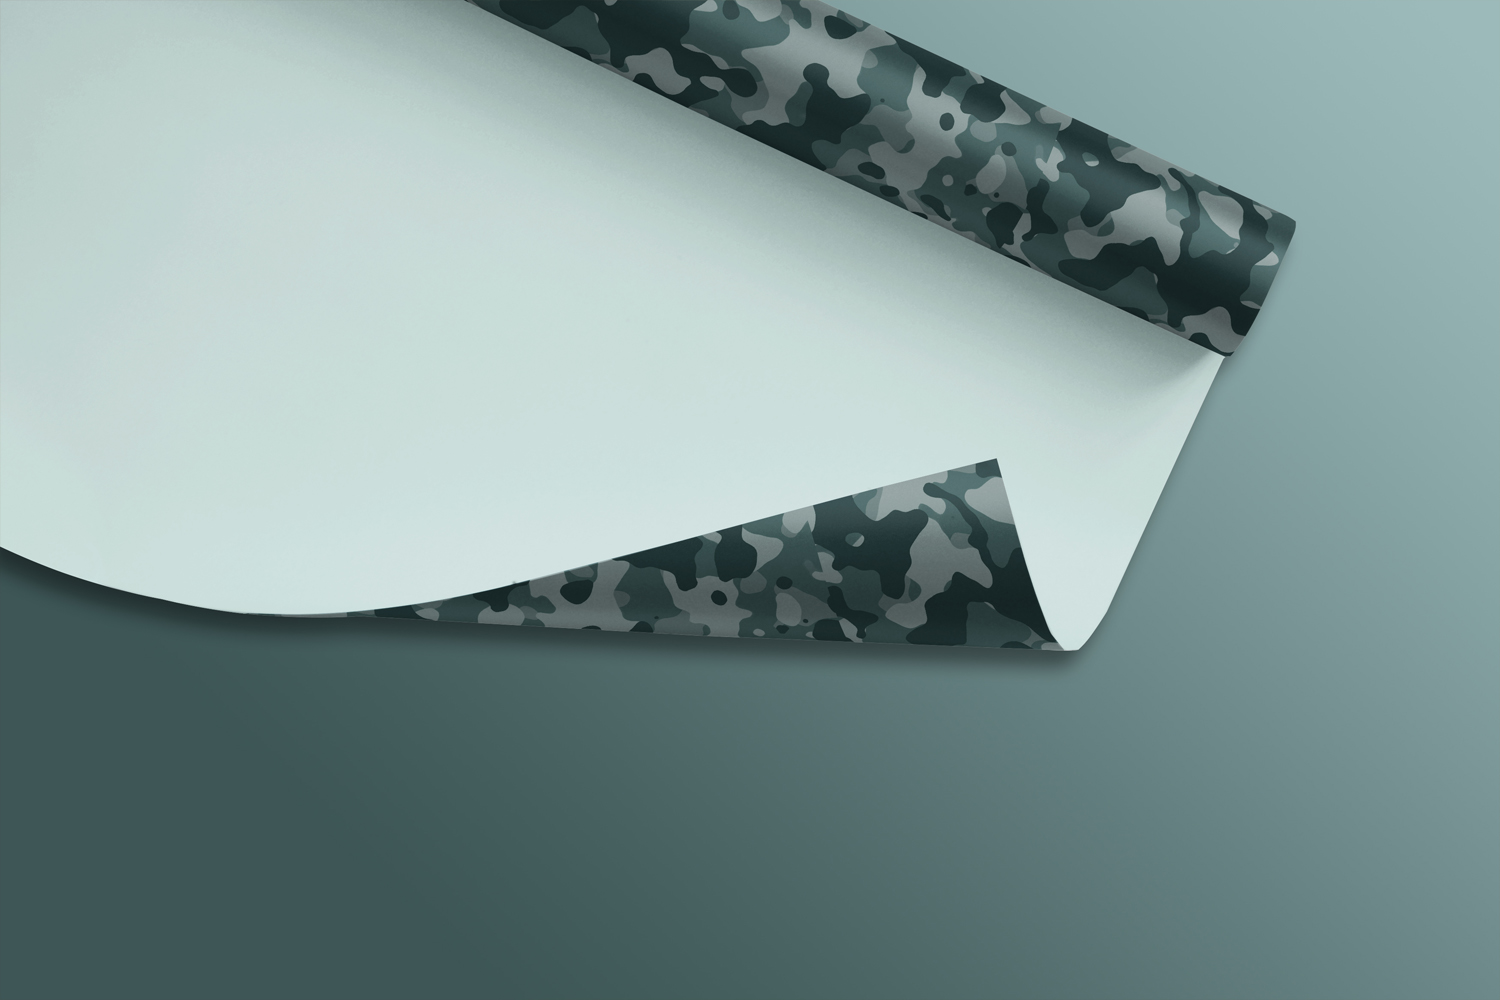 40 Alternative Camouflage Paper Designs example image 19